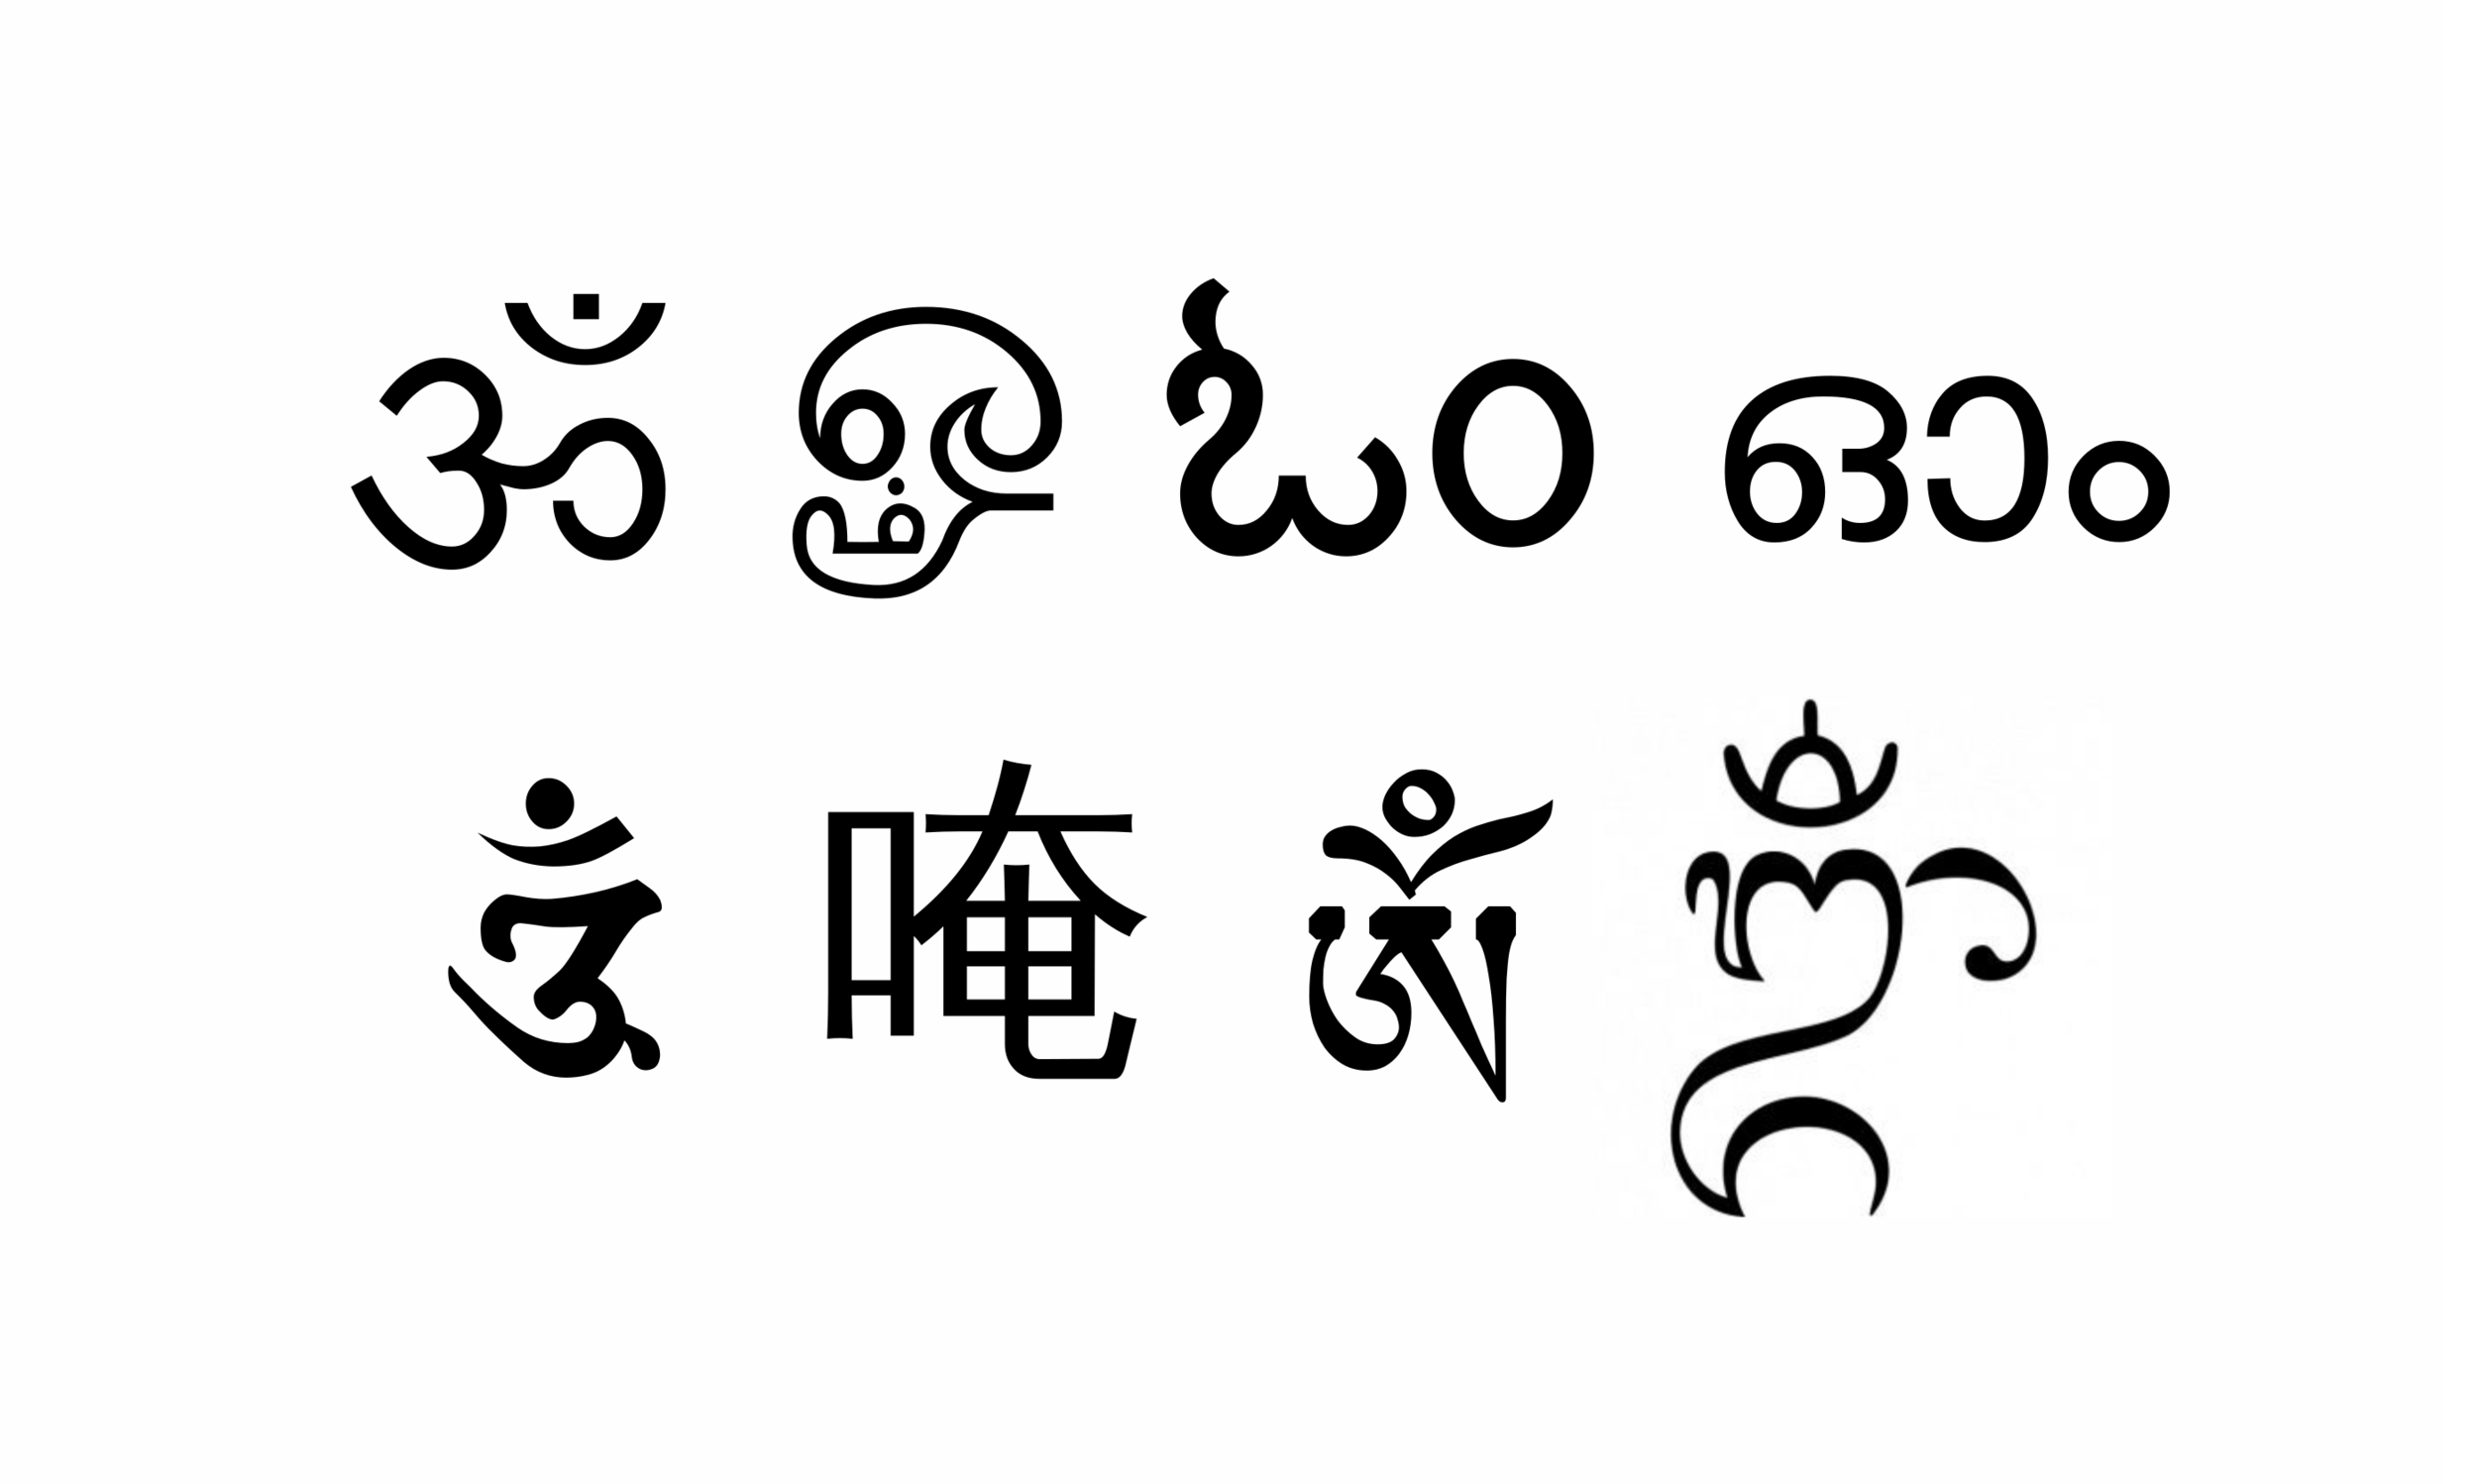 When spelled out in Devanagari, the script used to write Sanskrit, Hindi, and several other languages, OM is written ओ३म्. This image shows OM as it is written in stylized Devanagari, Tamil, Kannada, Malayalam, Siddham, Chinese, Tibetan, and Balinese.